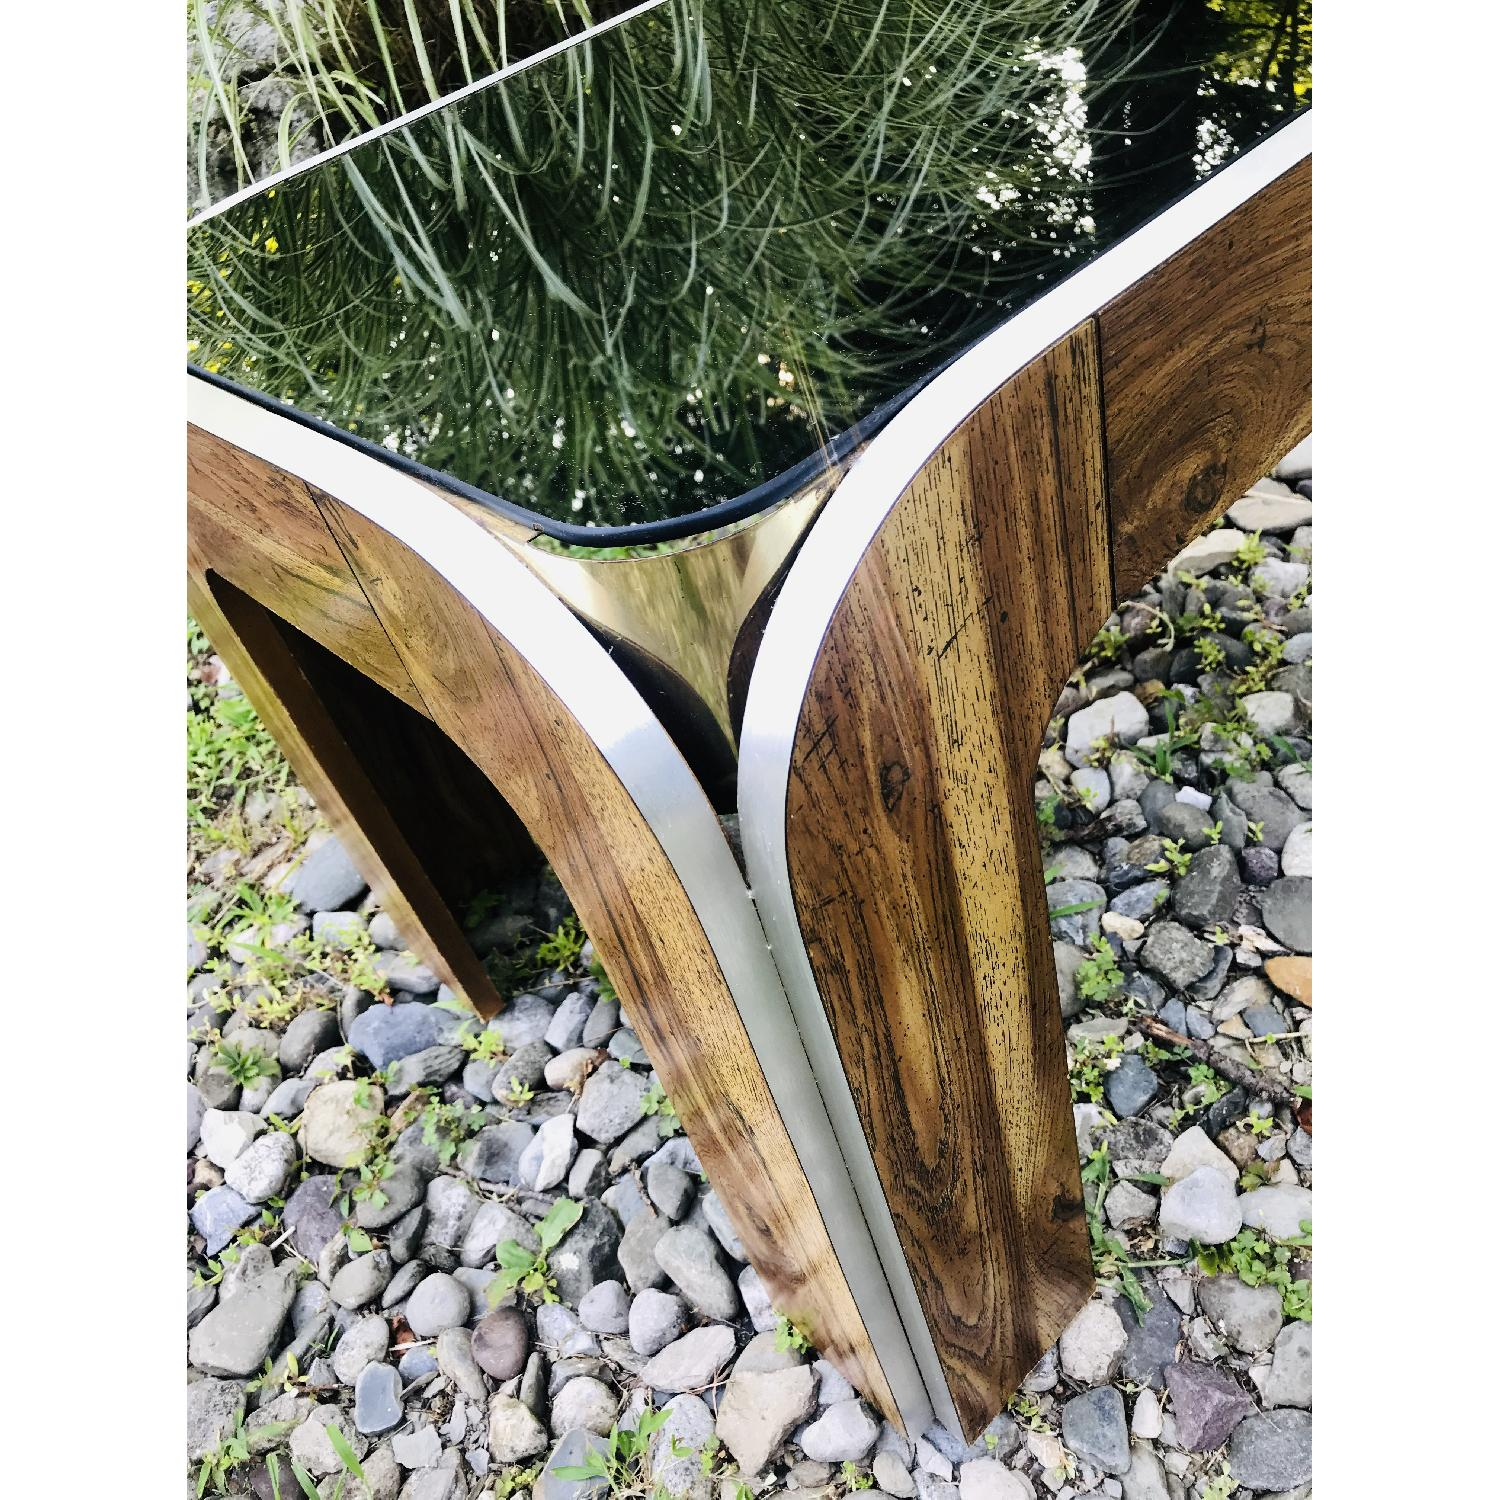 Vinitage Deco Style Coffee Table w/ Smoked Glass Top - image-2